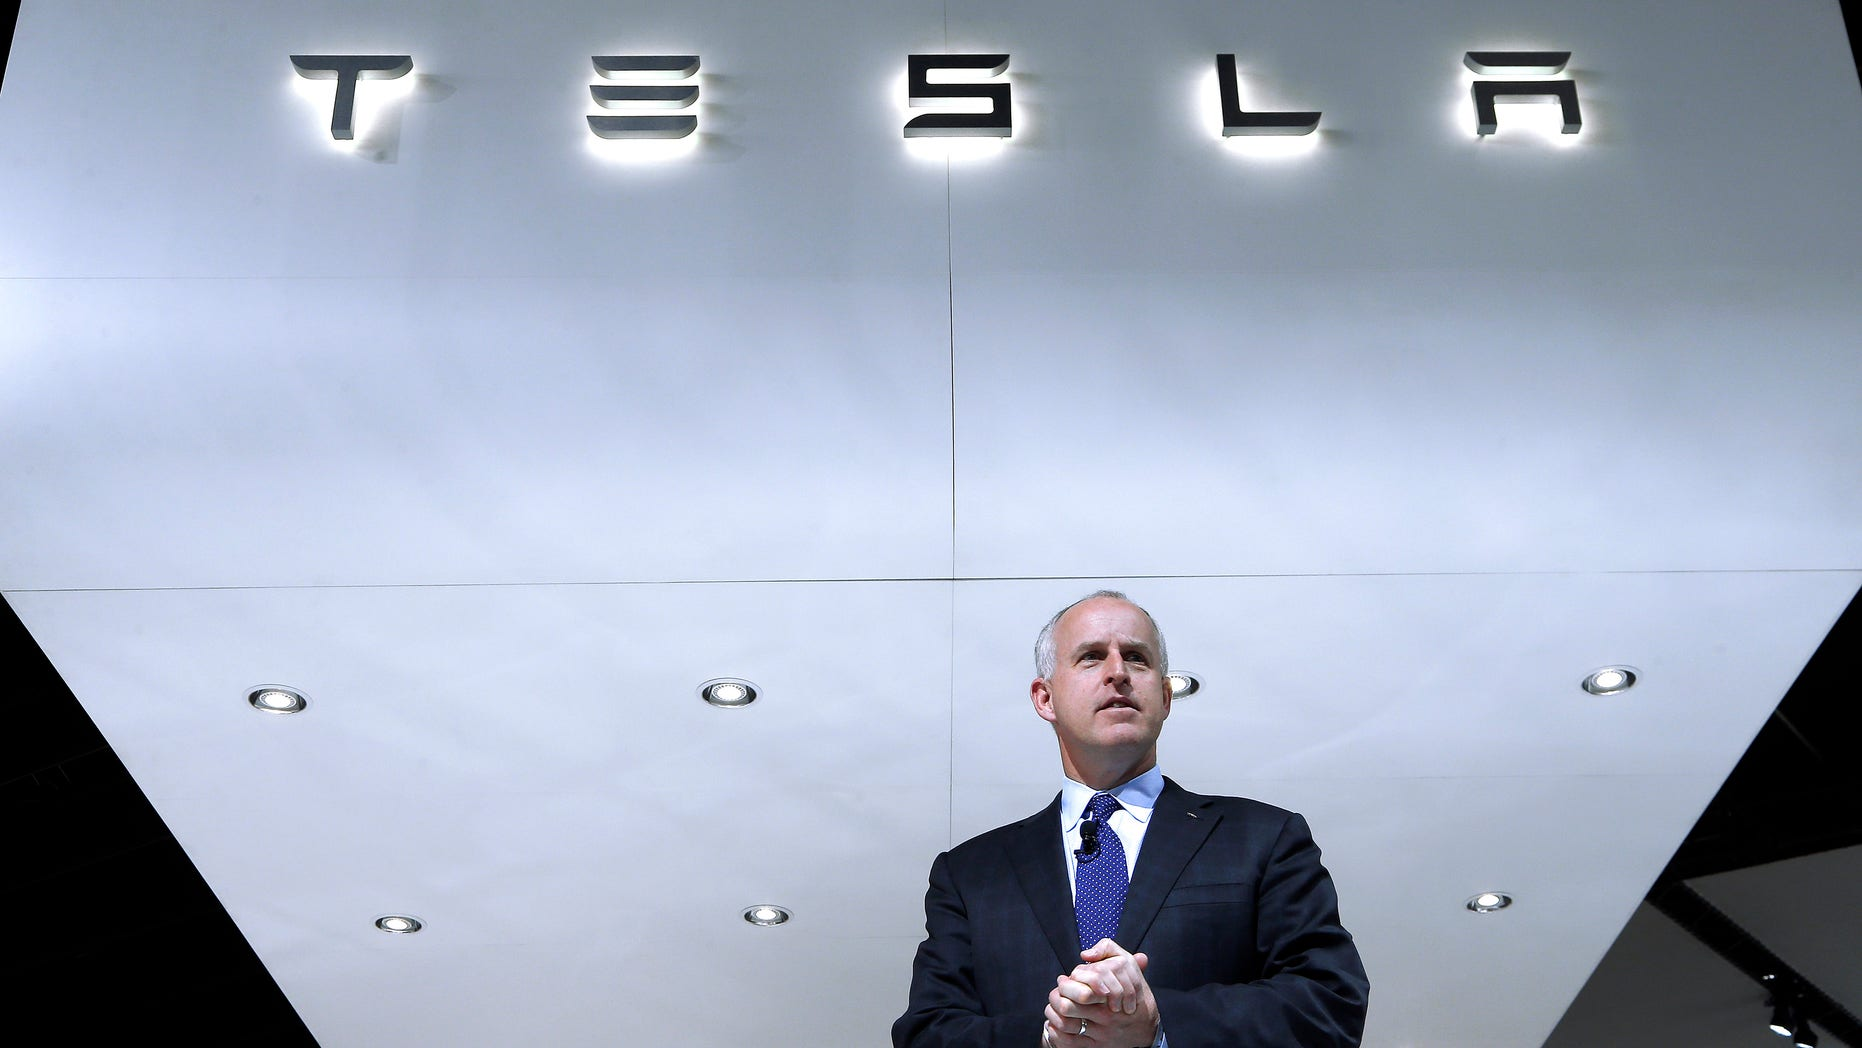 FILE - In this Jan. 14, 2014, photo, Diarmuid O'Connell, Tesla Vice President, Business Development speaks during media previews at the North American International Auto Show in Detroit. Tesla reports quarterly earnings on Wednesday, Feb. 19, 2014. (AP Photo/Paul Sancya, File)